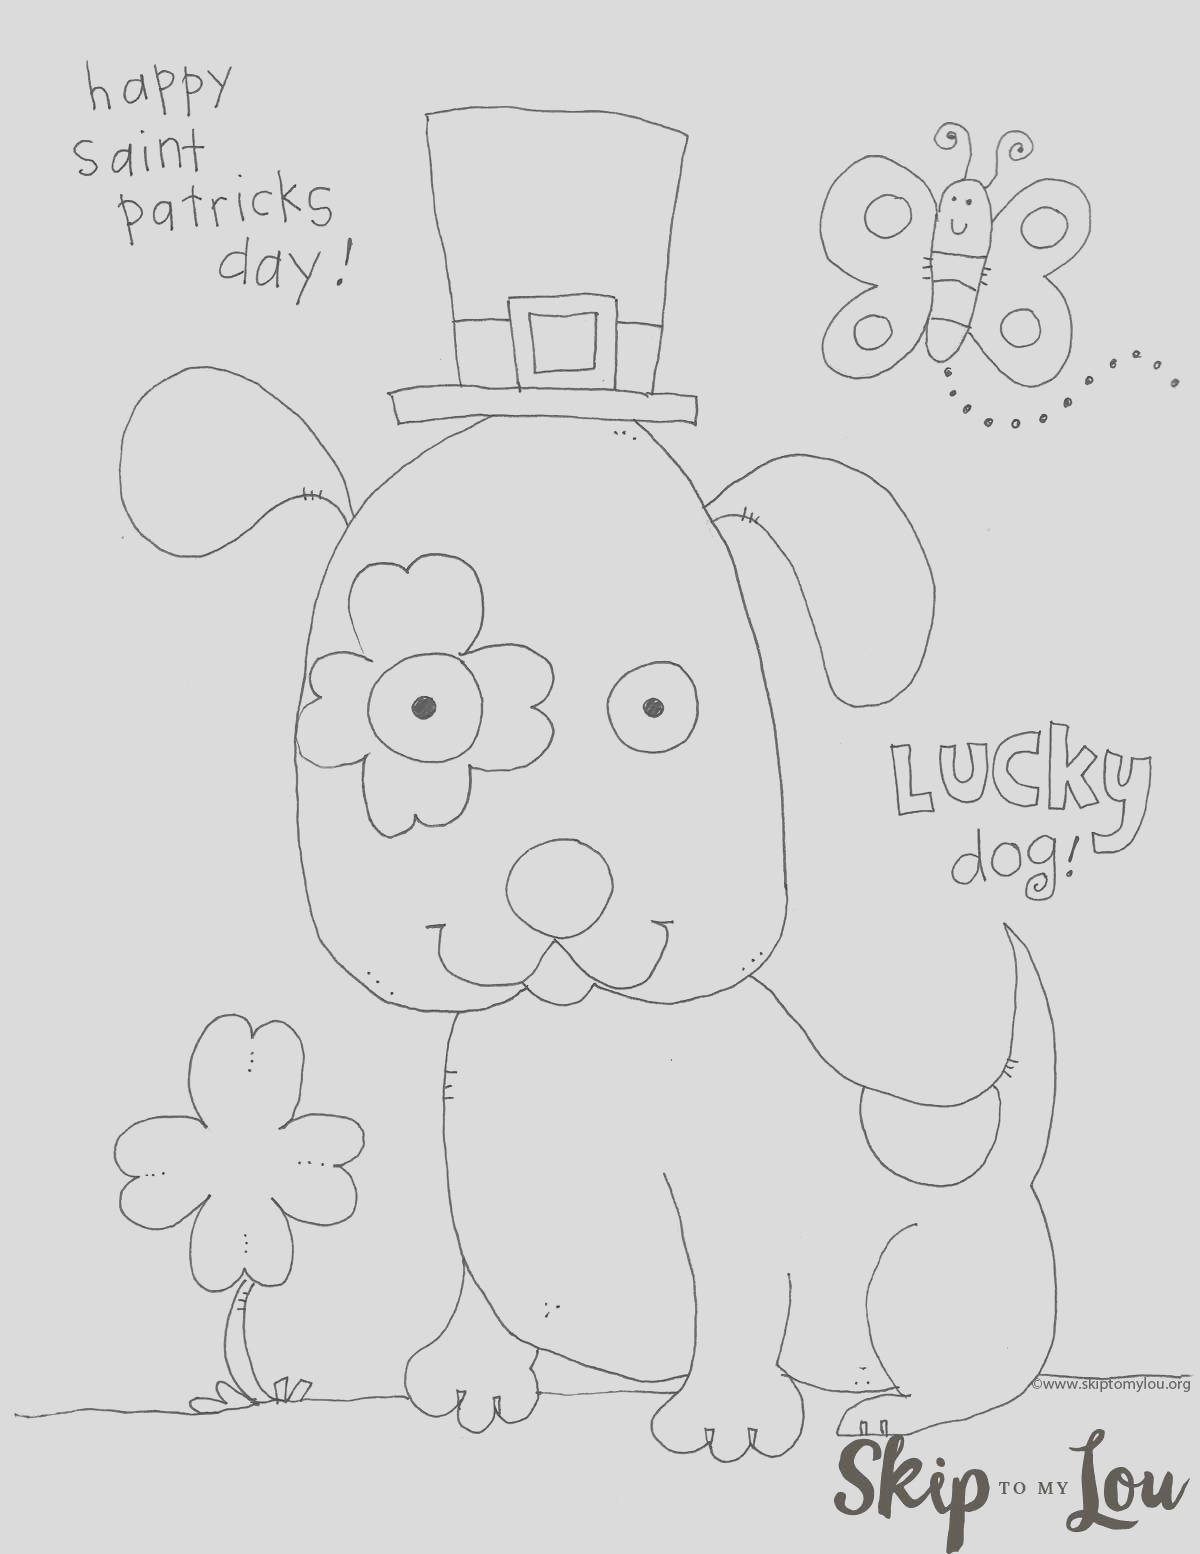 st patricks day coloring page preschoolers